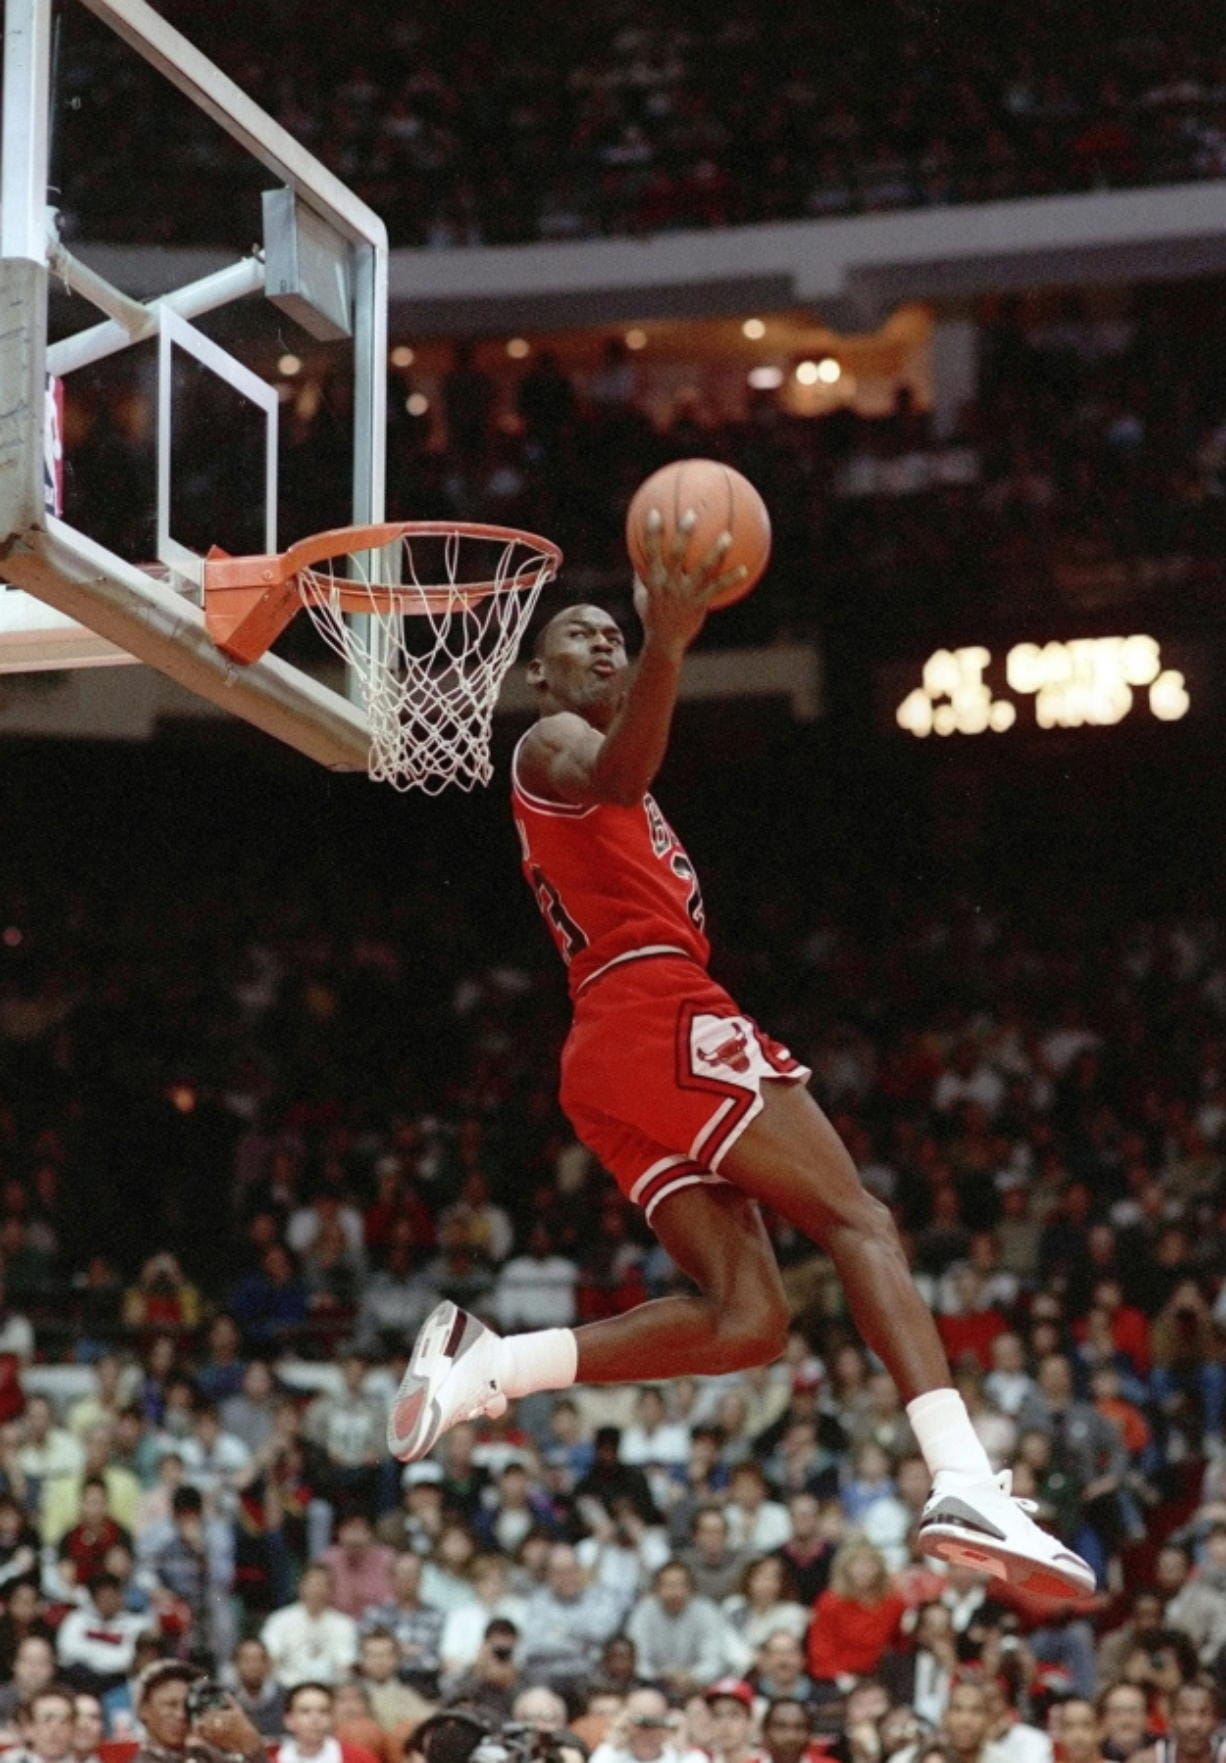 Chicago Bulls' Michael Jordan dunks during the 1988 slam-dunk competition of the NBA All-Star weekend in Chicago. Jordan left the old Chicago Stadium that night with the trophy. To this day, many believe Wilkins was the rightful winner.